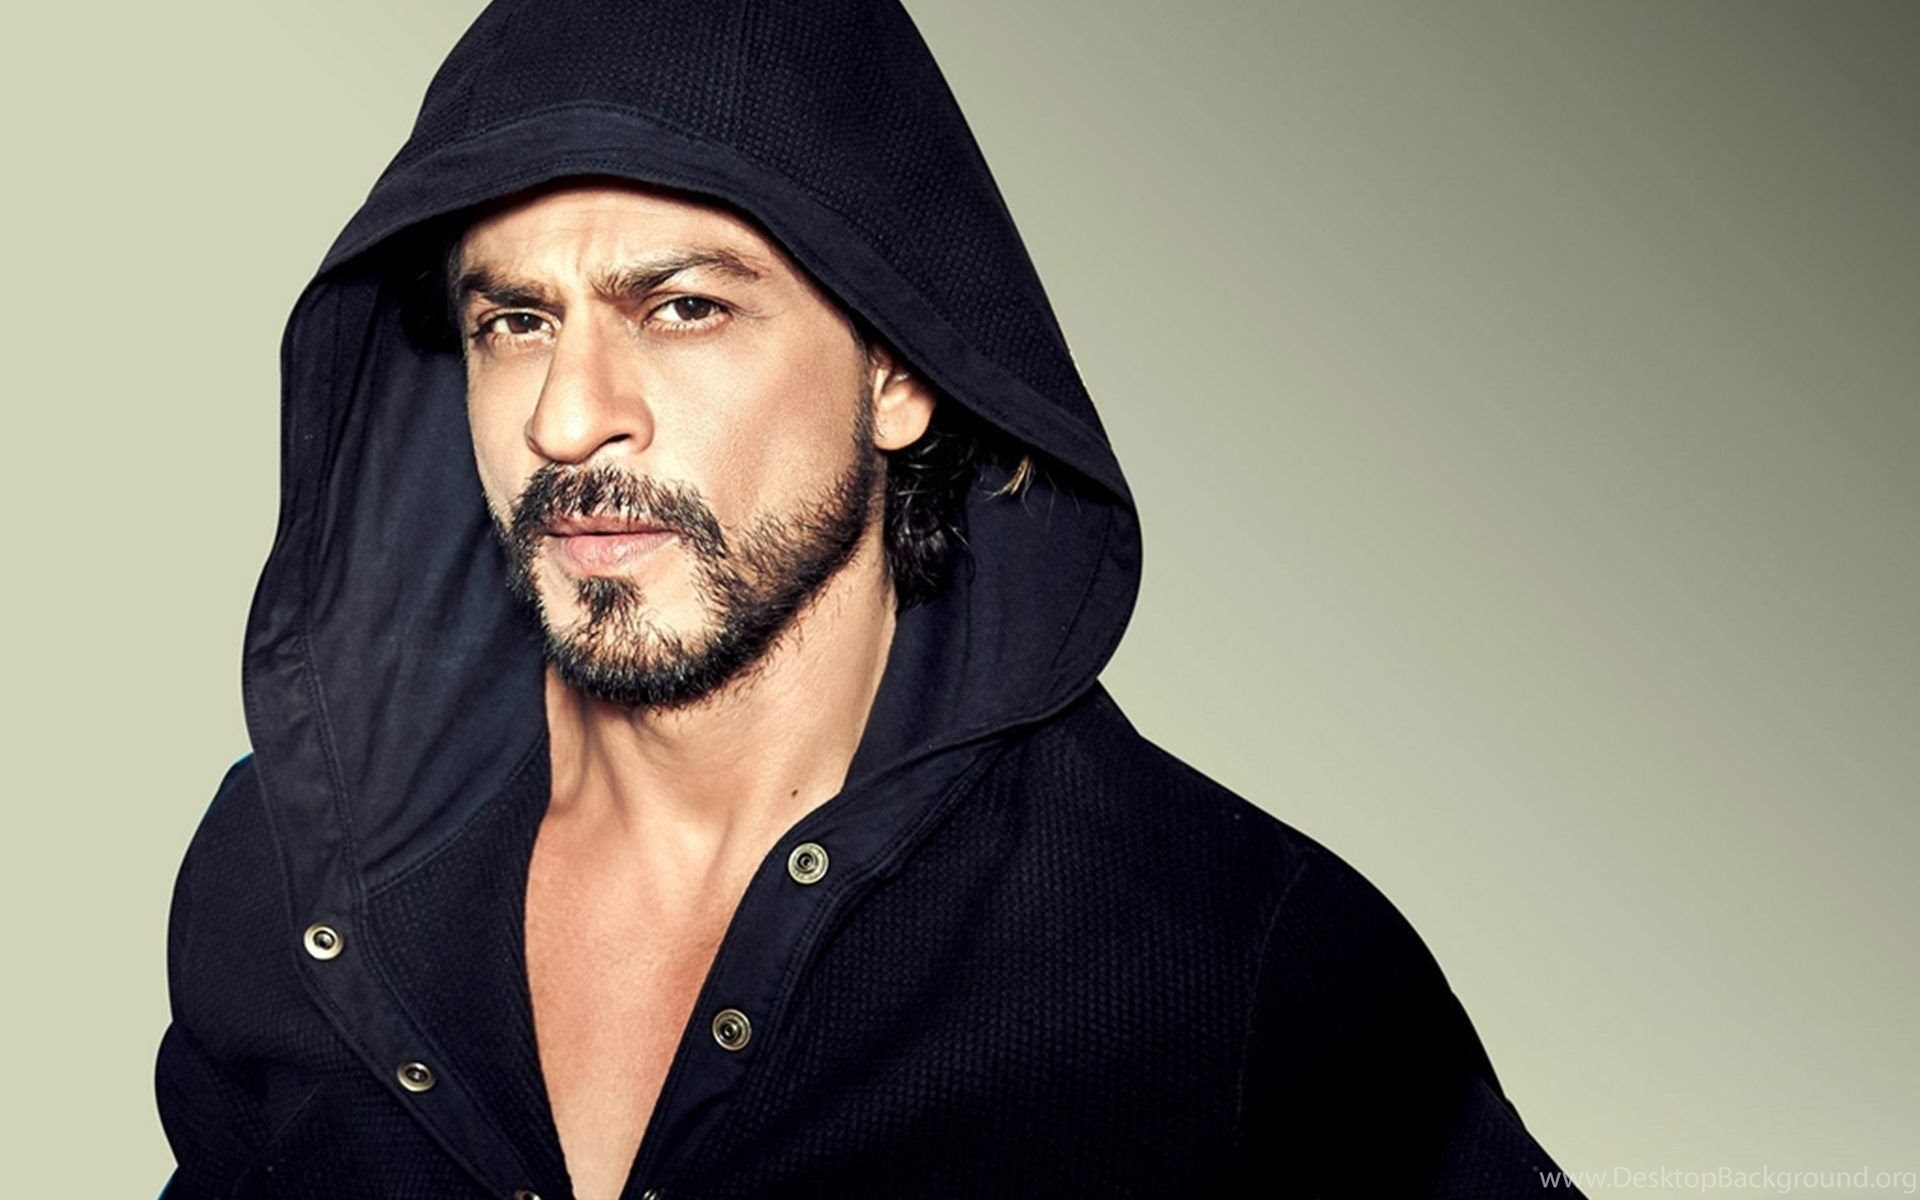 actor shahrukh khan hd wallpapers new hd images desktop background